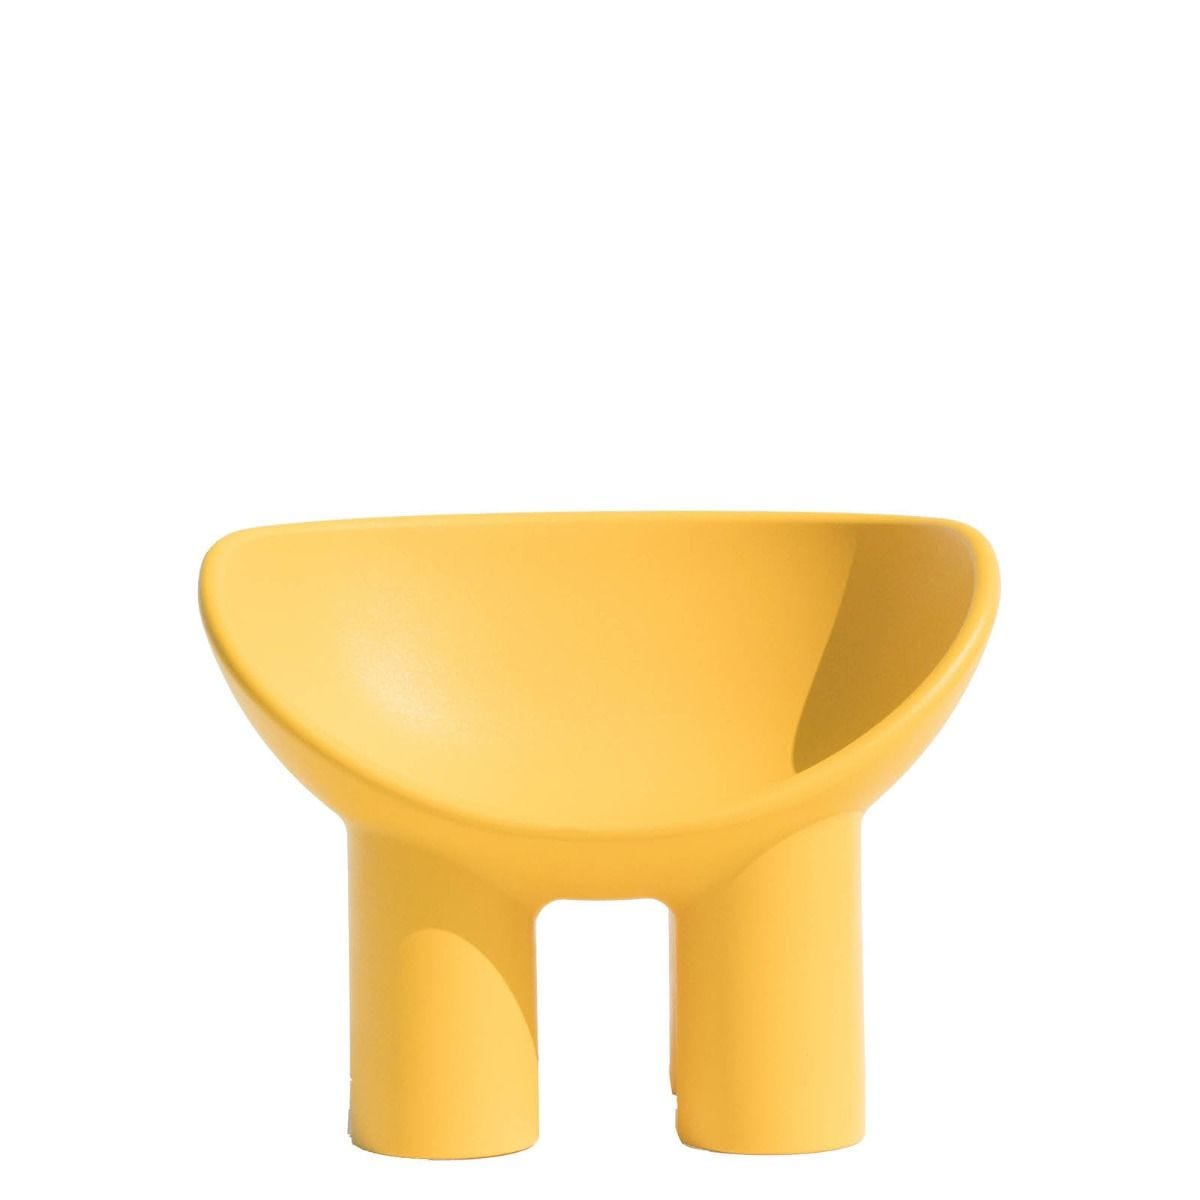 ROLY POLY Fauteuil jaune ocre